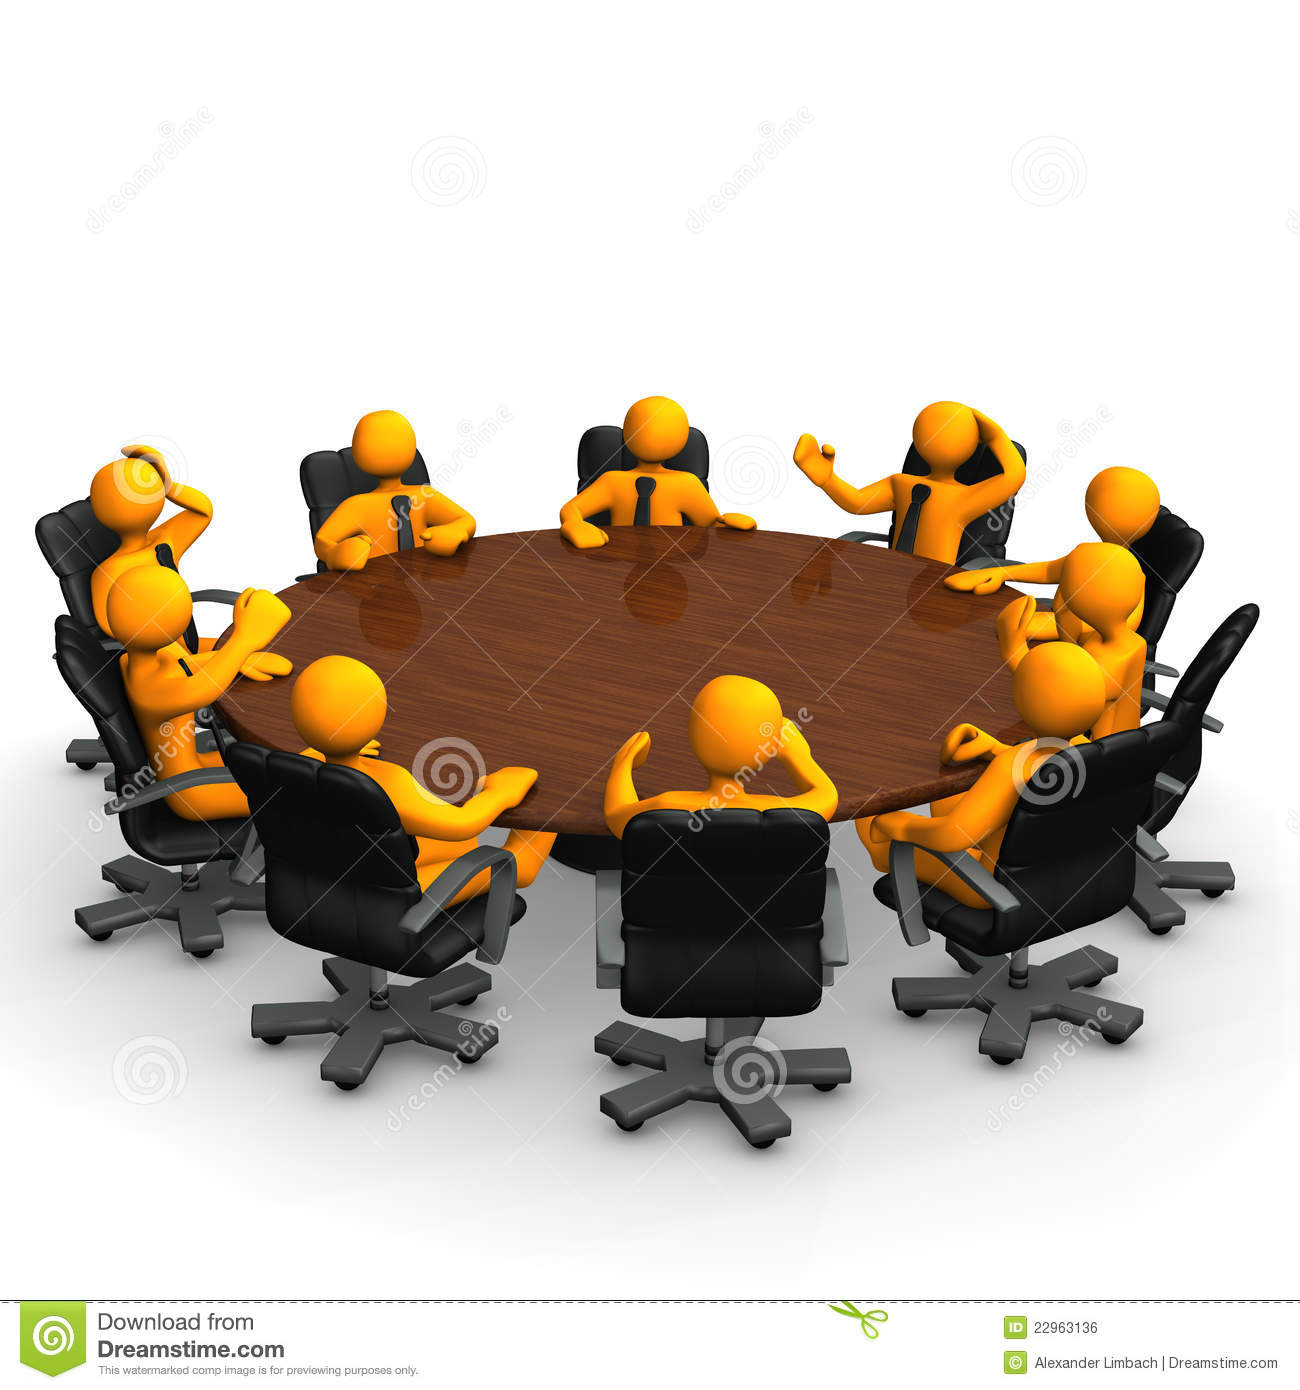 Meeting Table Royalty Free Stock Image - Image: 22963136 Z Table Chart